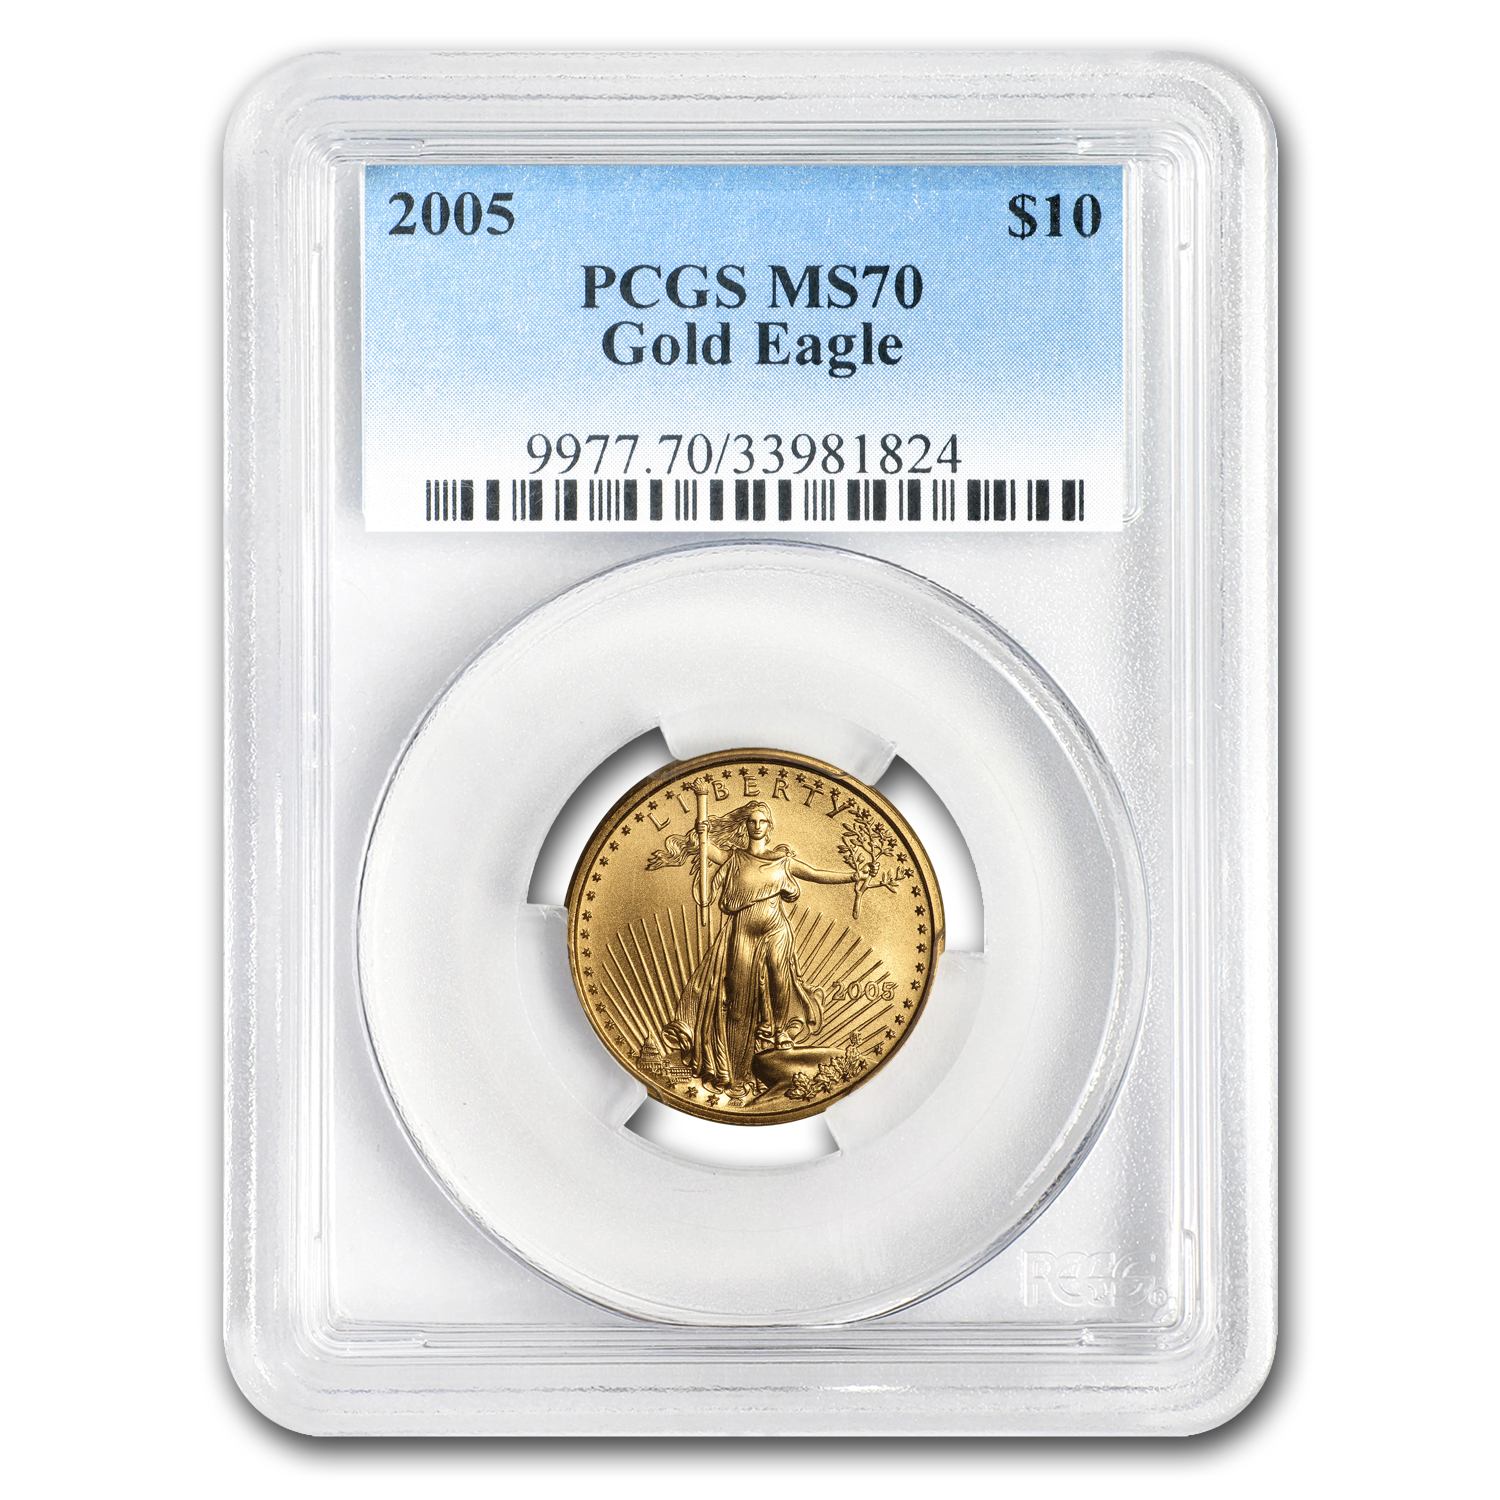 2005 1/4 oz Gold American Eagle MS-70 PCGS (20th Anniversary)